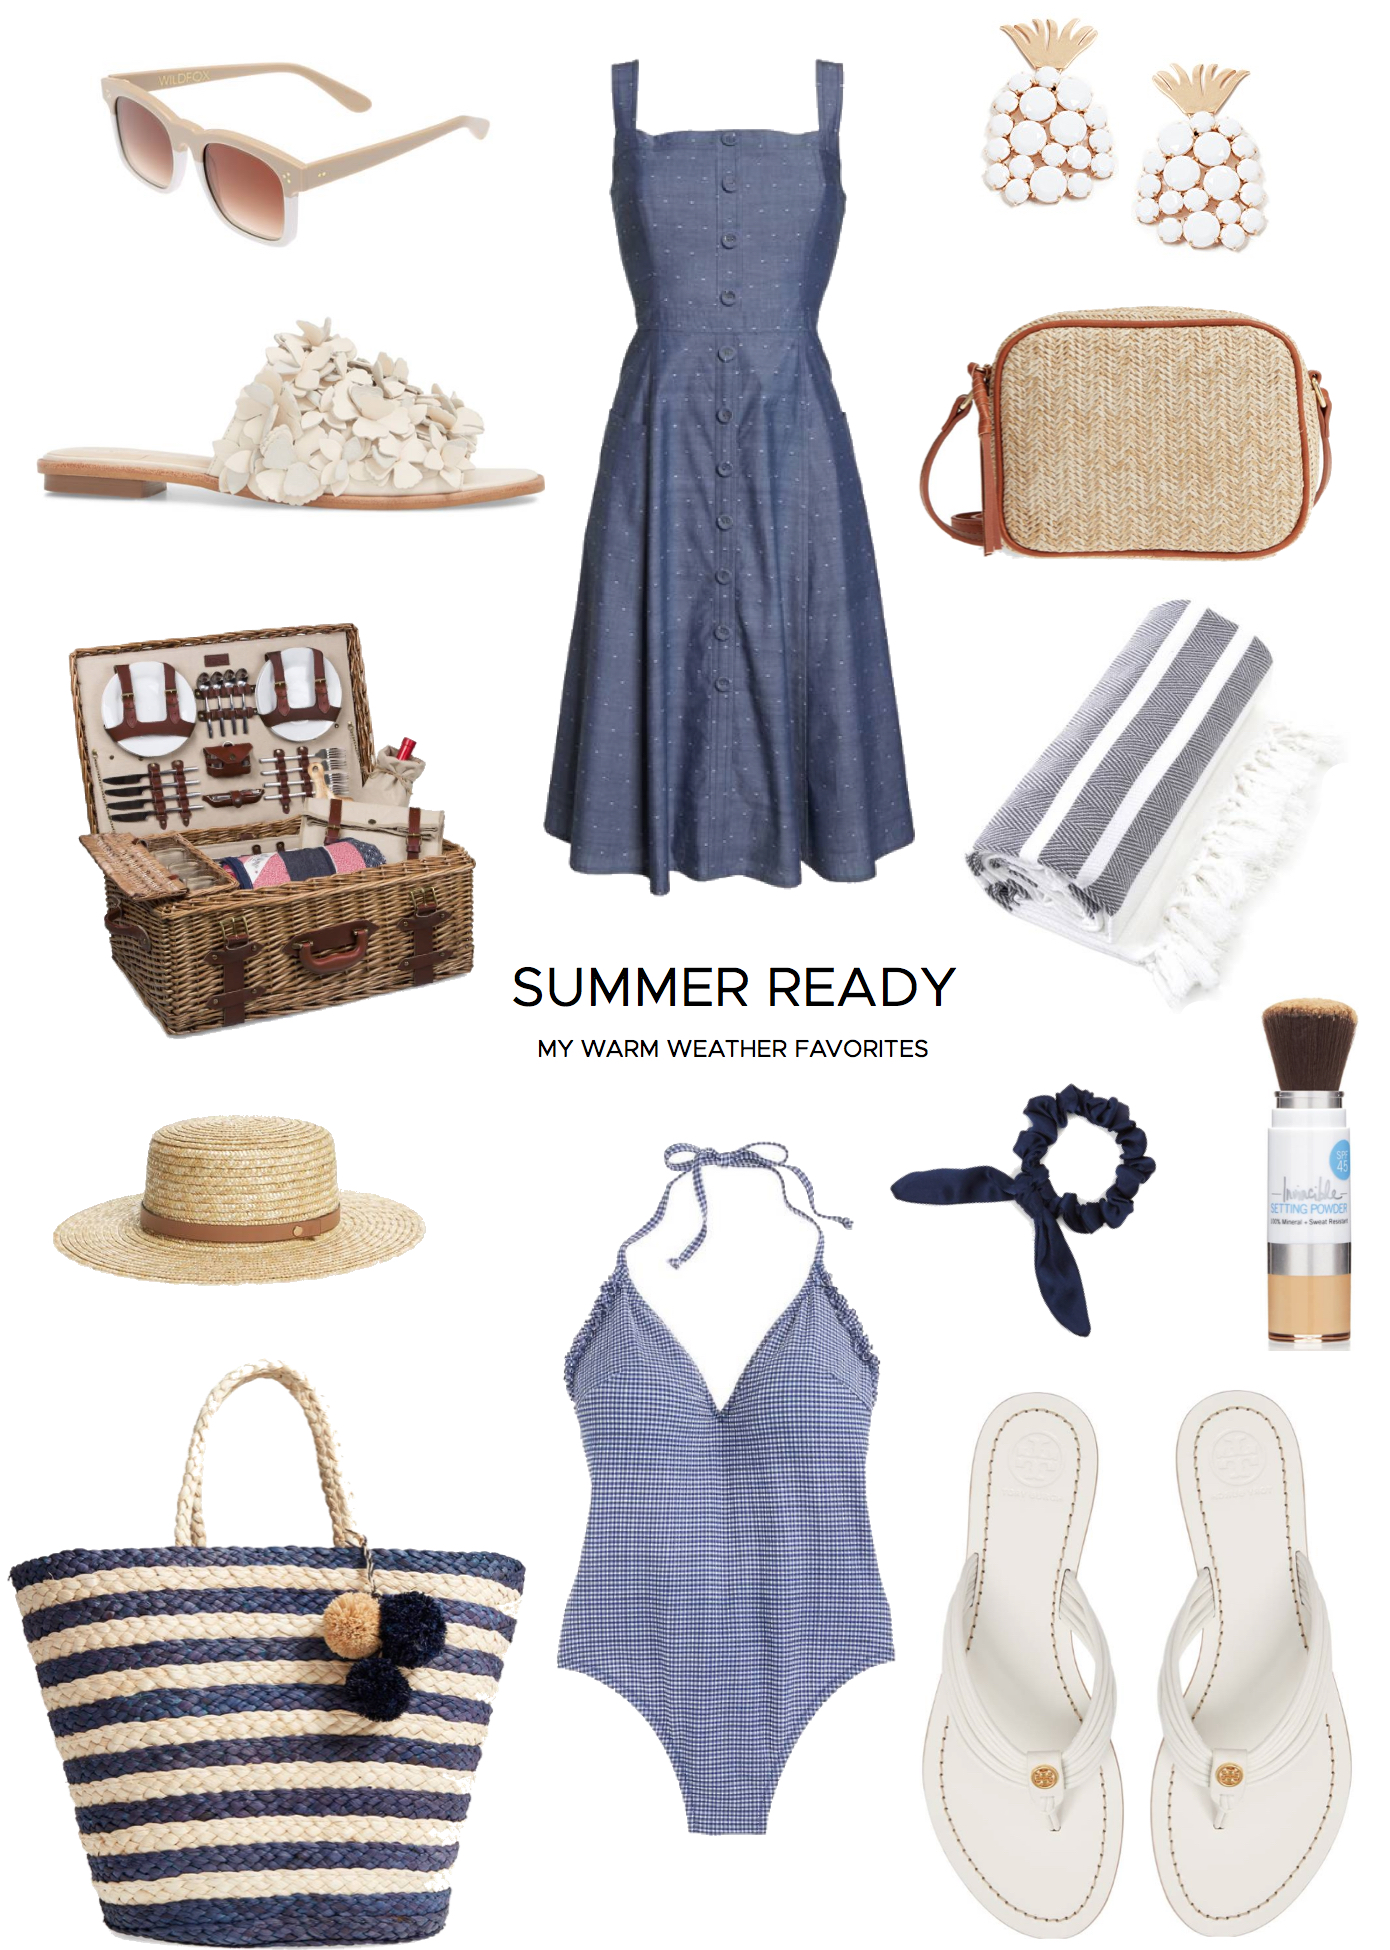 a38138851 ... the top look and you ve got the perfect warm weather outfit! Always be  sure to keep the second look in your bag to be ready for the sun all summer  long.